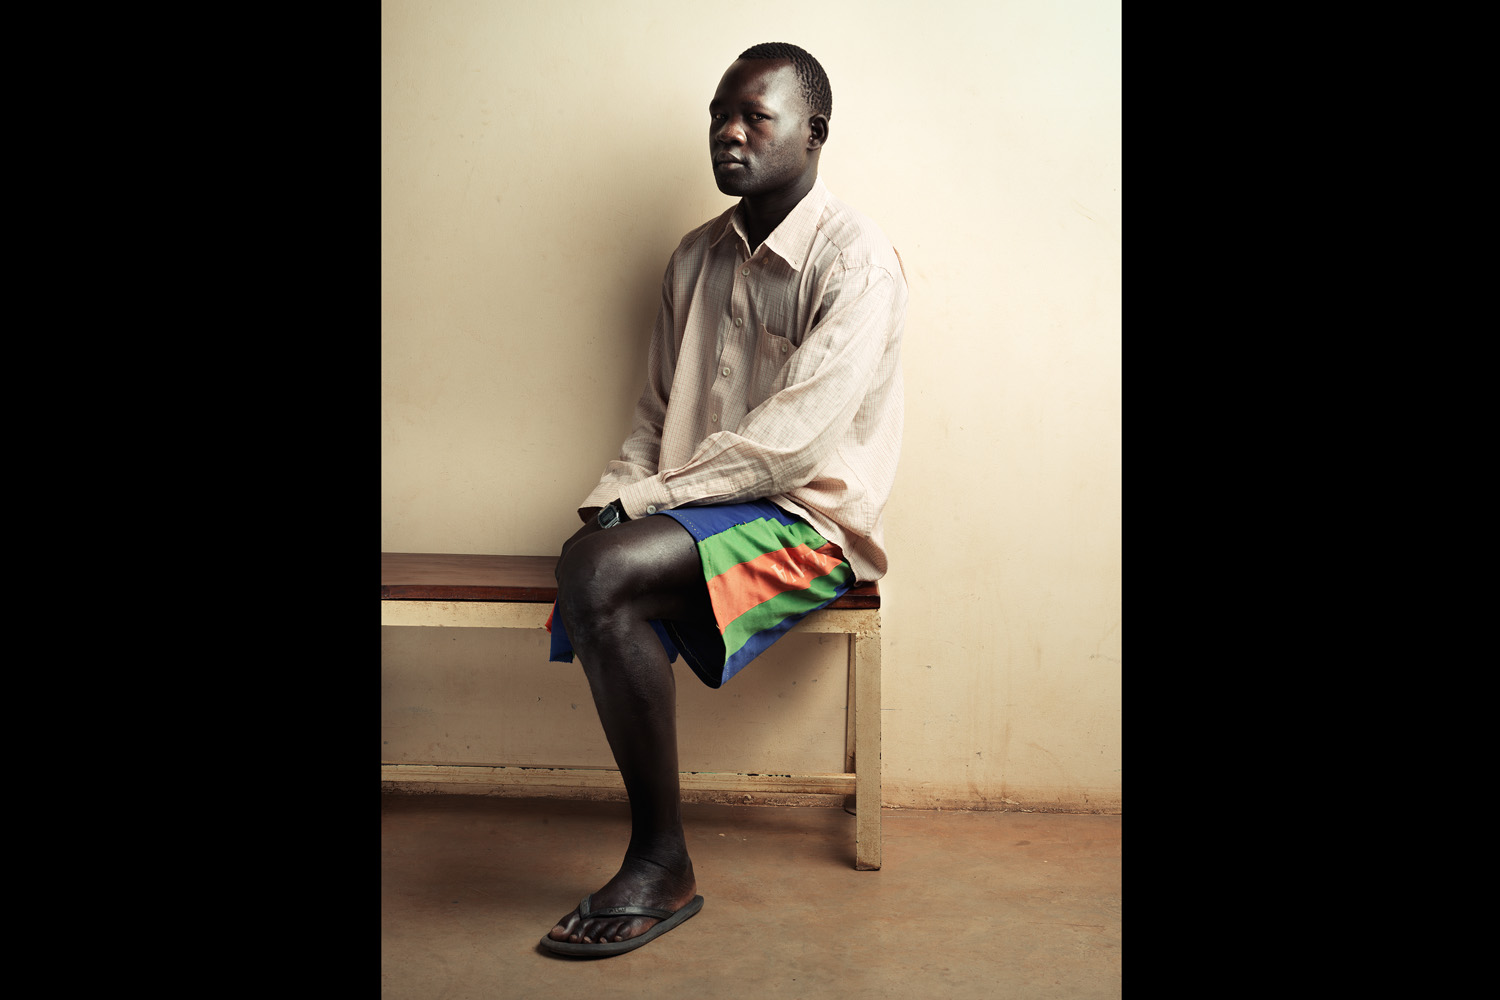 Peter Lukabon lost his right leg in a mine accident and is being treated at ICRC (International Committee of the Red Cross) in Juba, South Sudan.